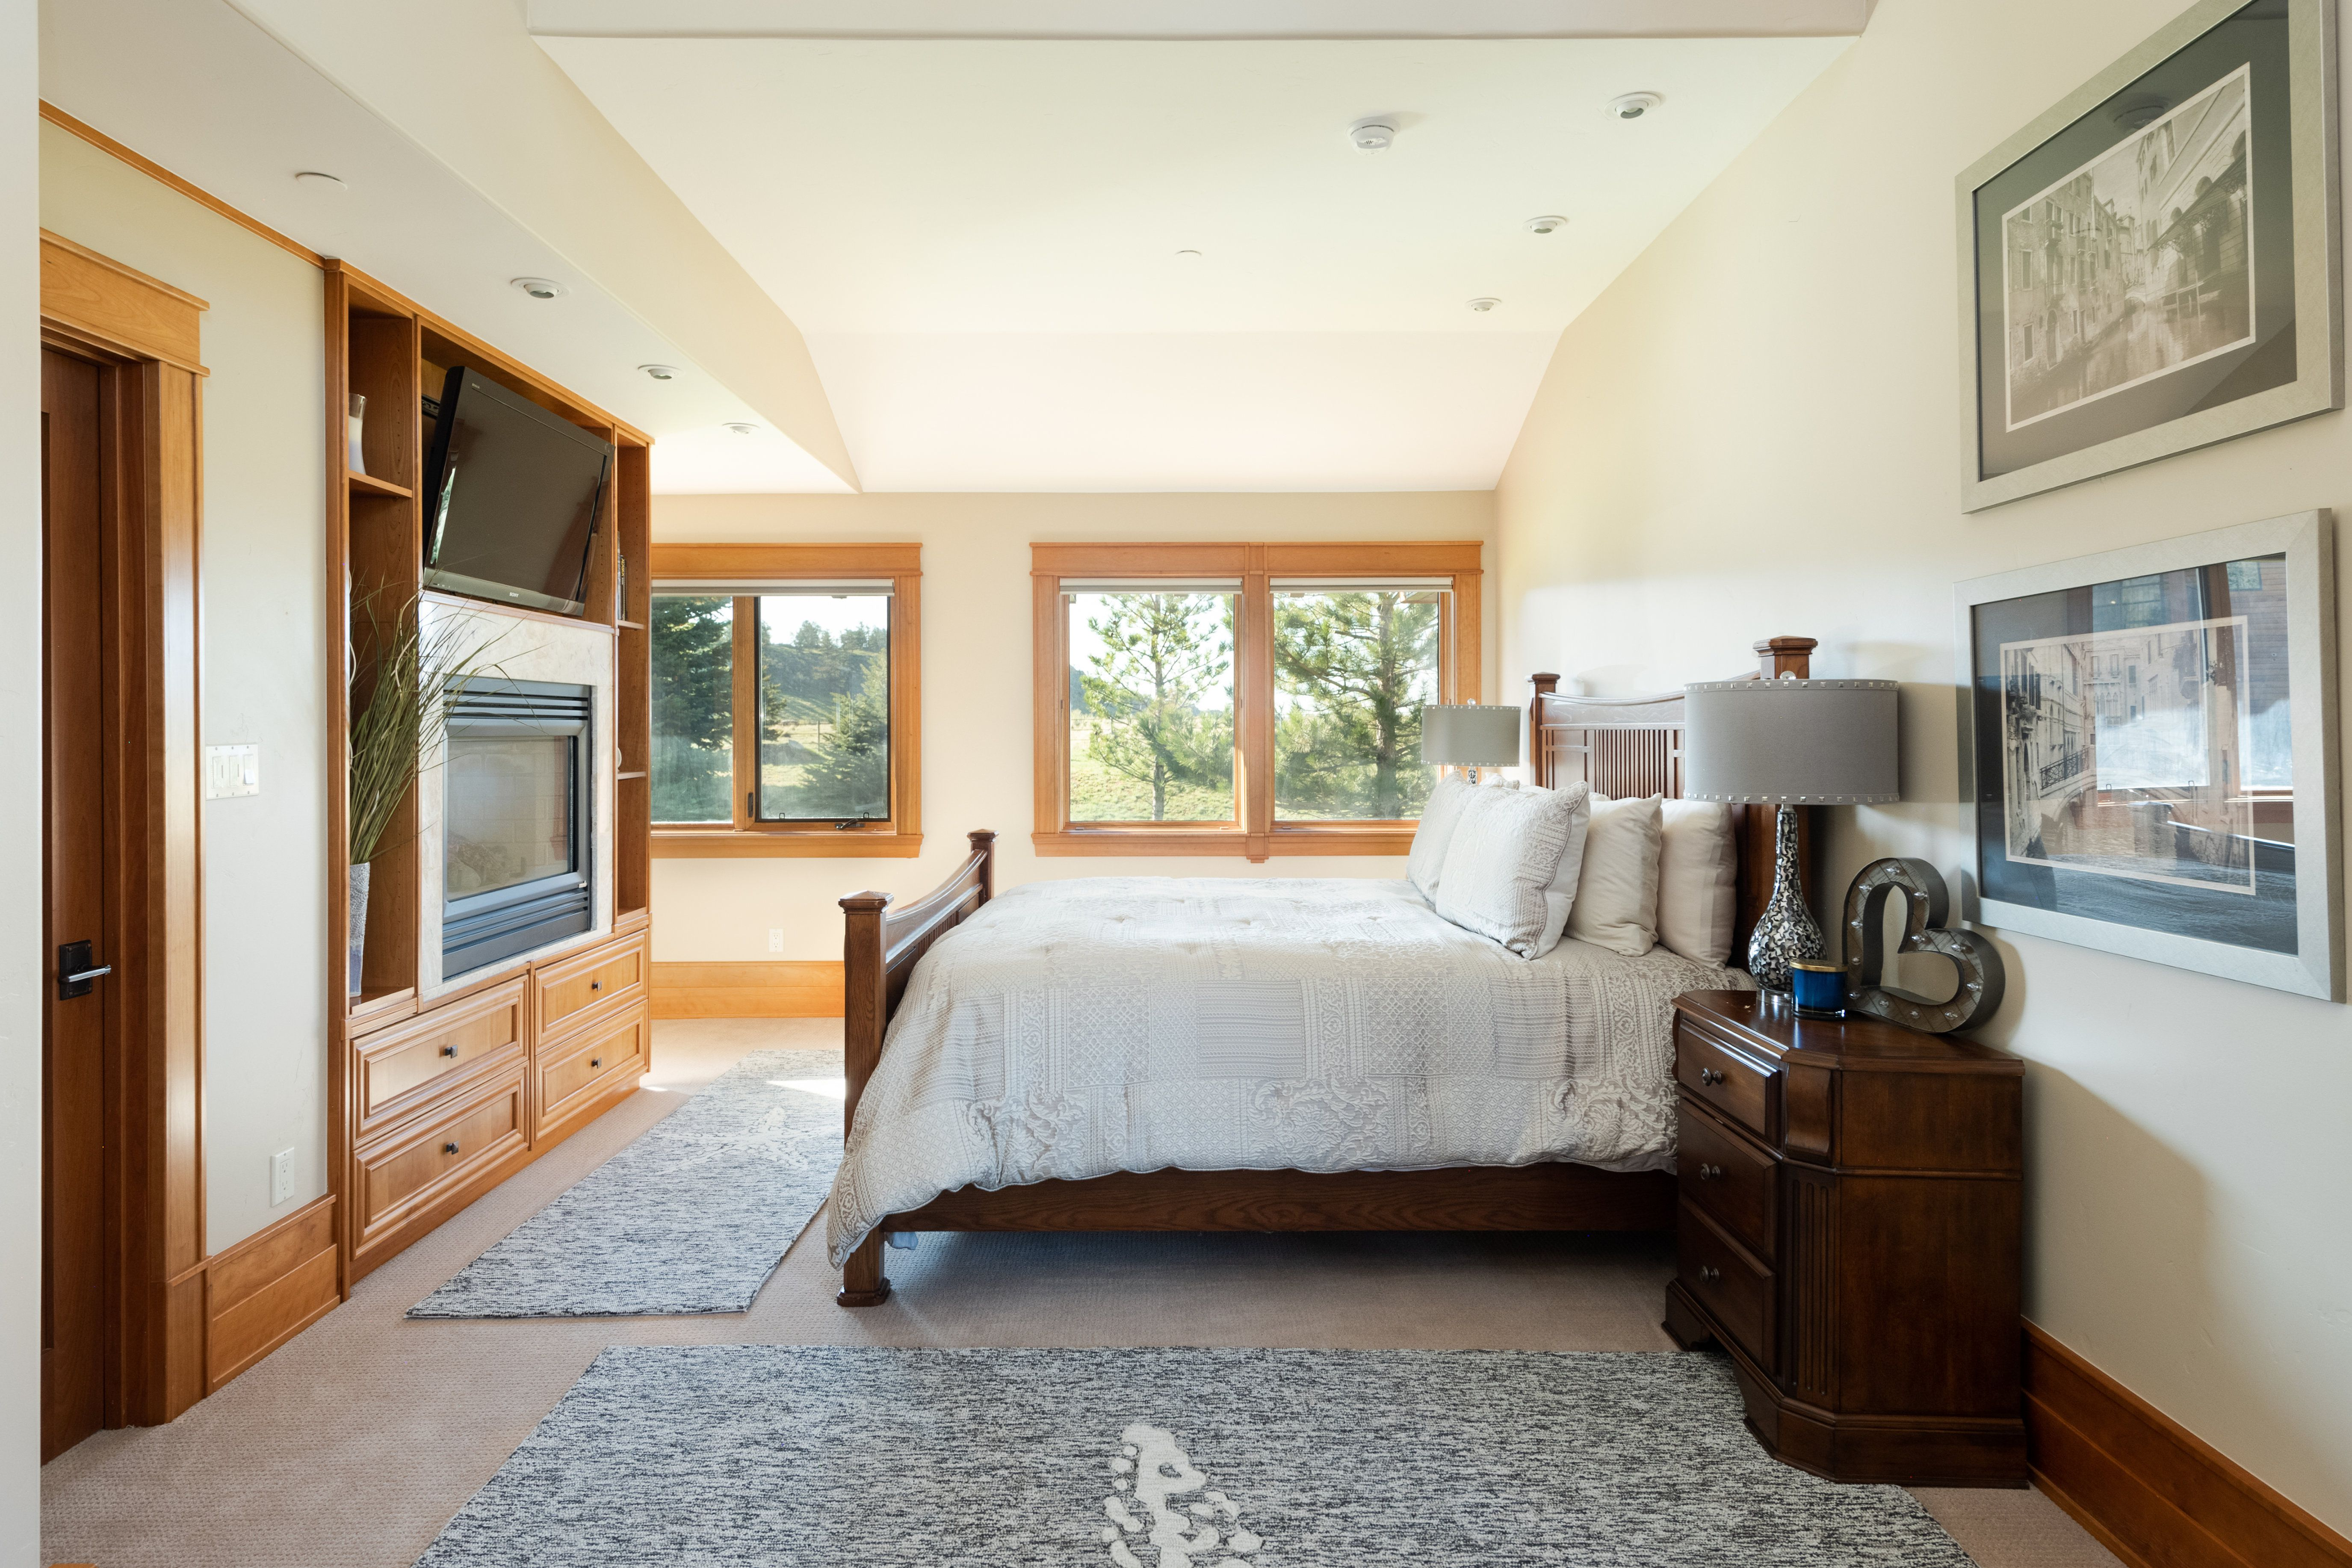 Colorado Mountain house on 35 acres asks $7M bedroom